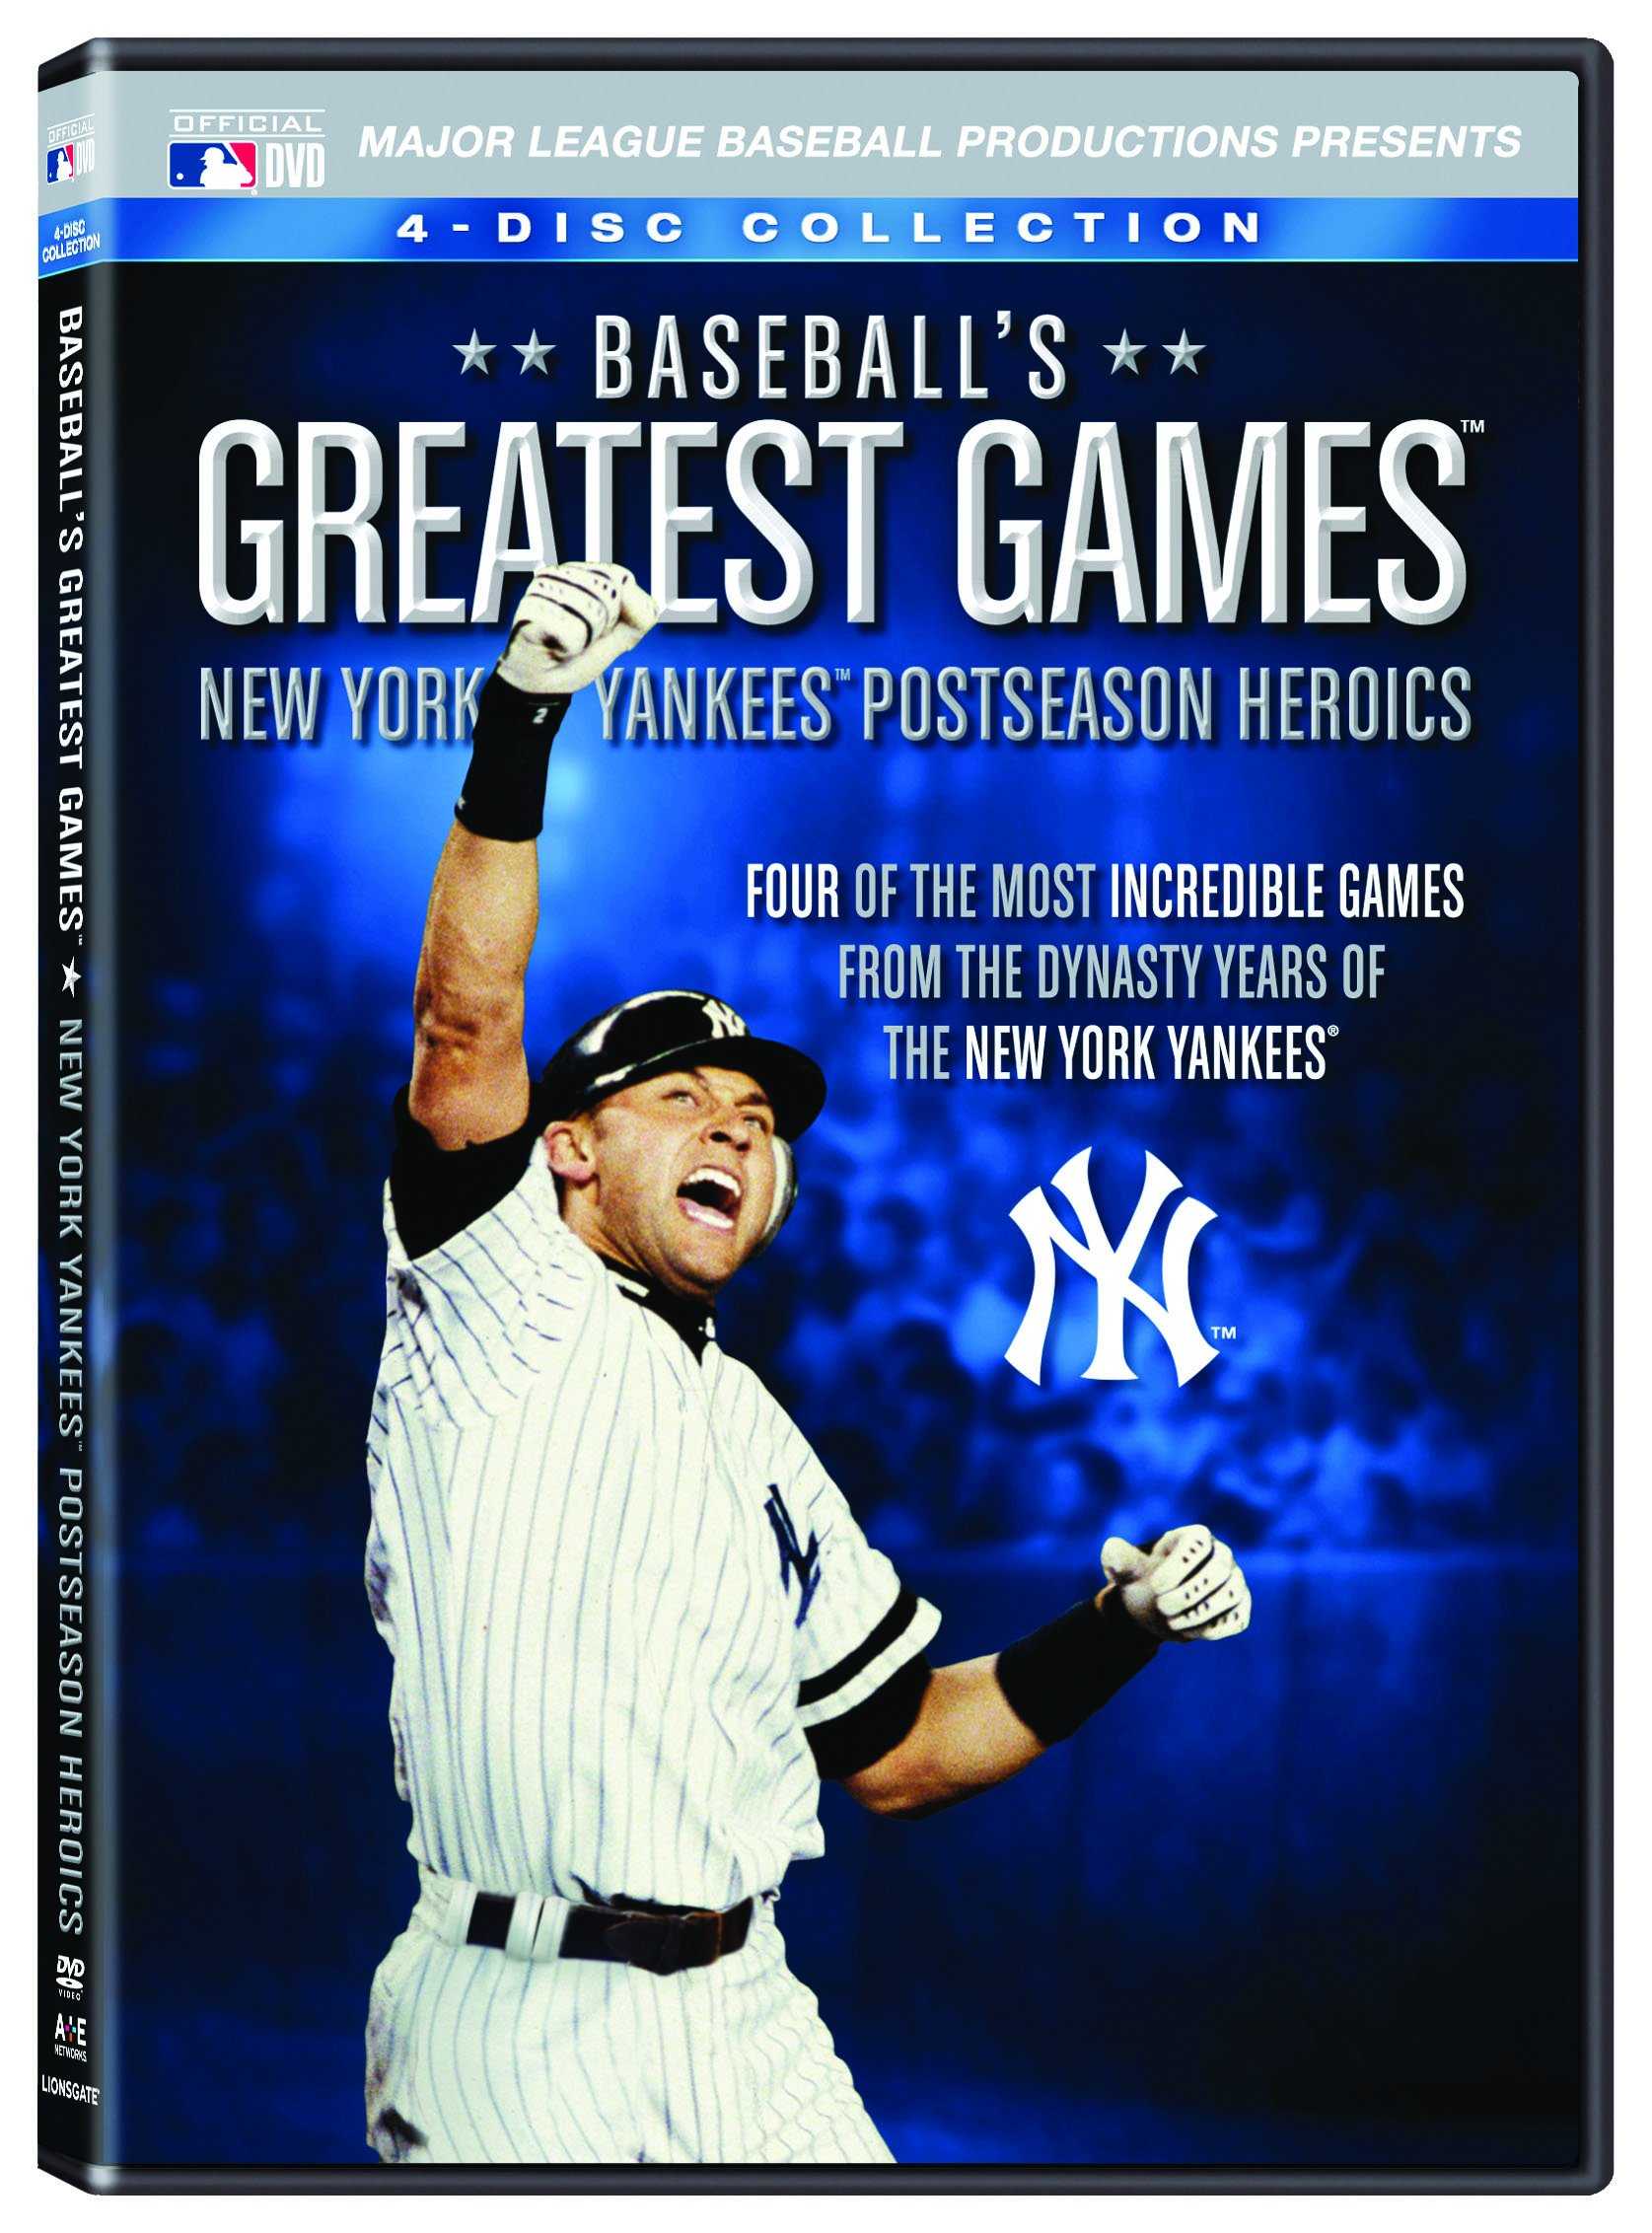 Baseball's Greatest Games: New York Yankees Postseason Heroics [DVD]